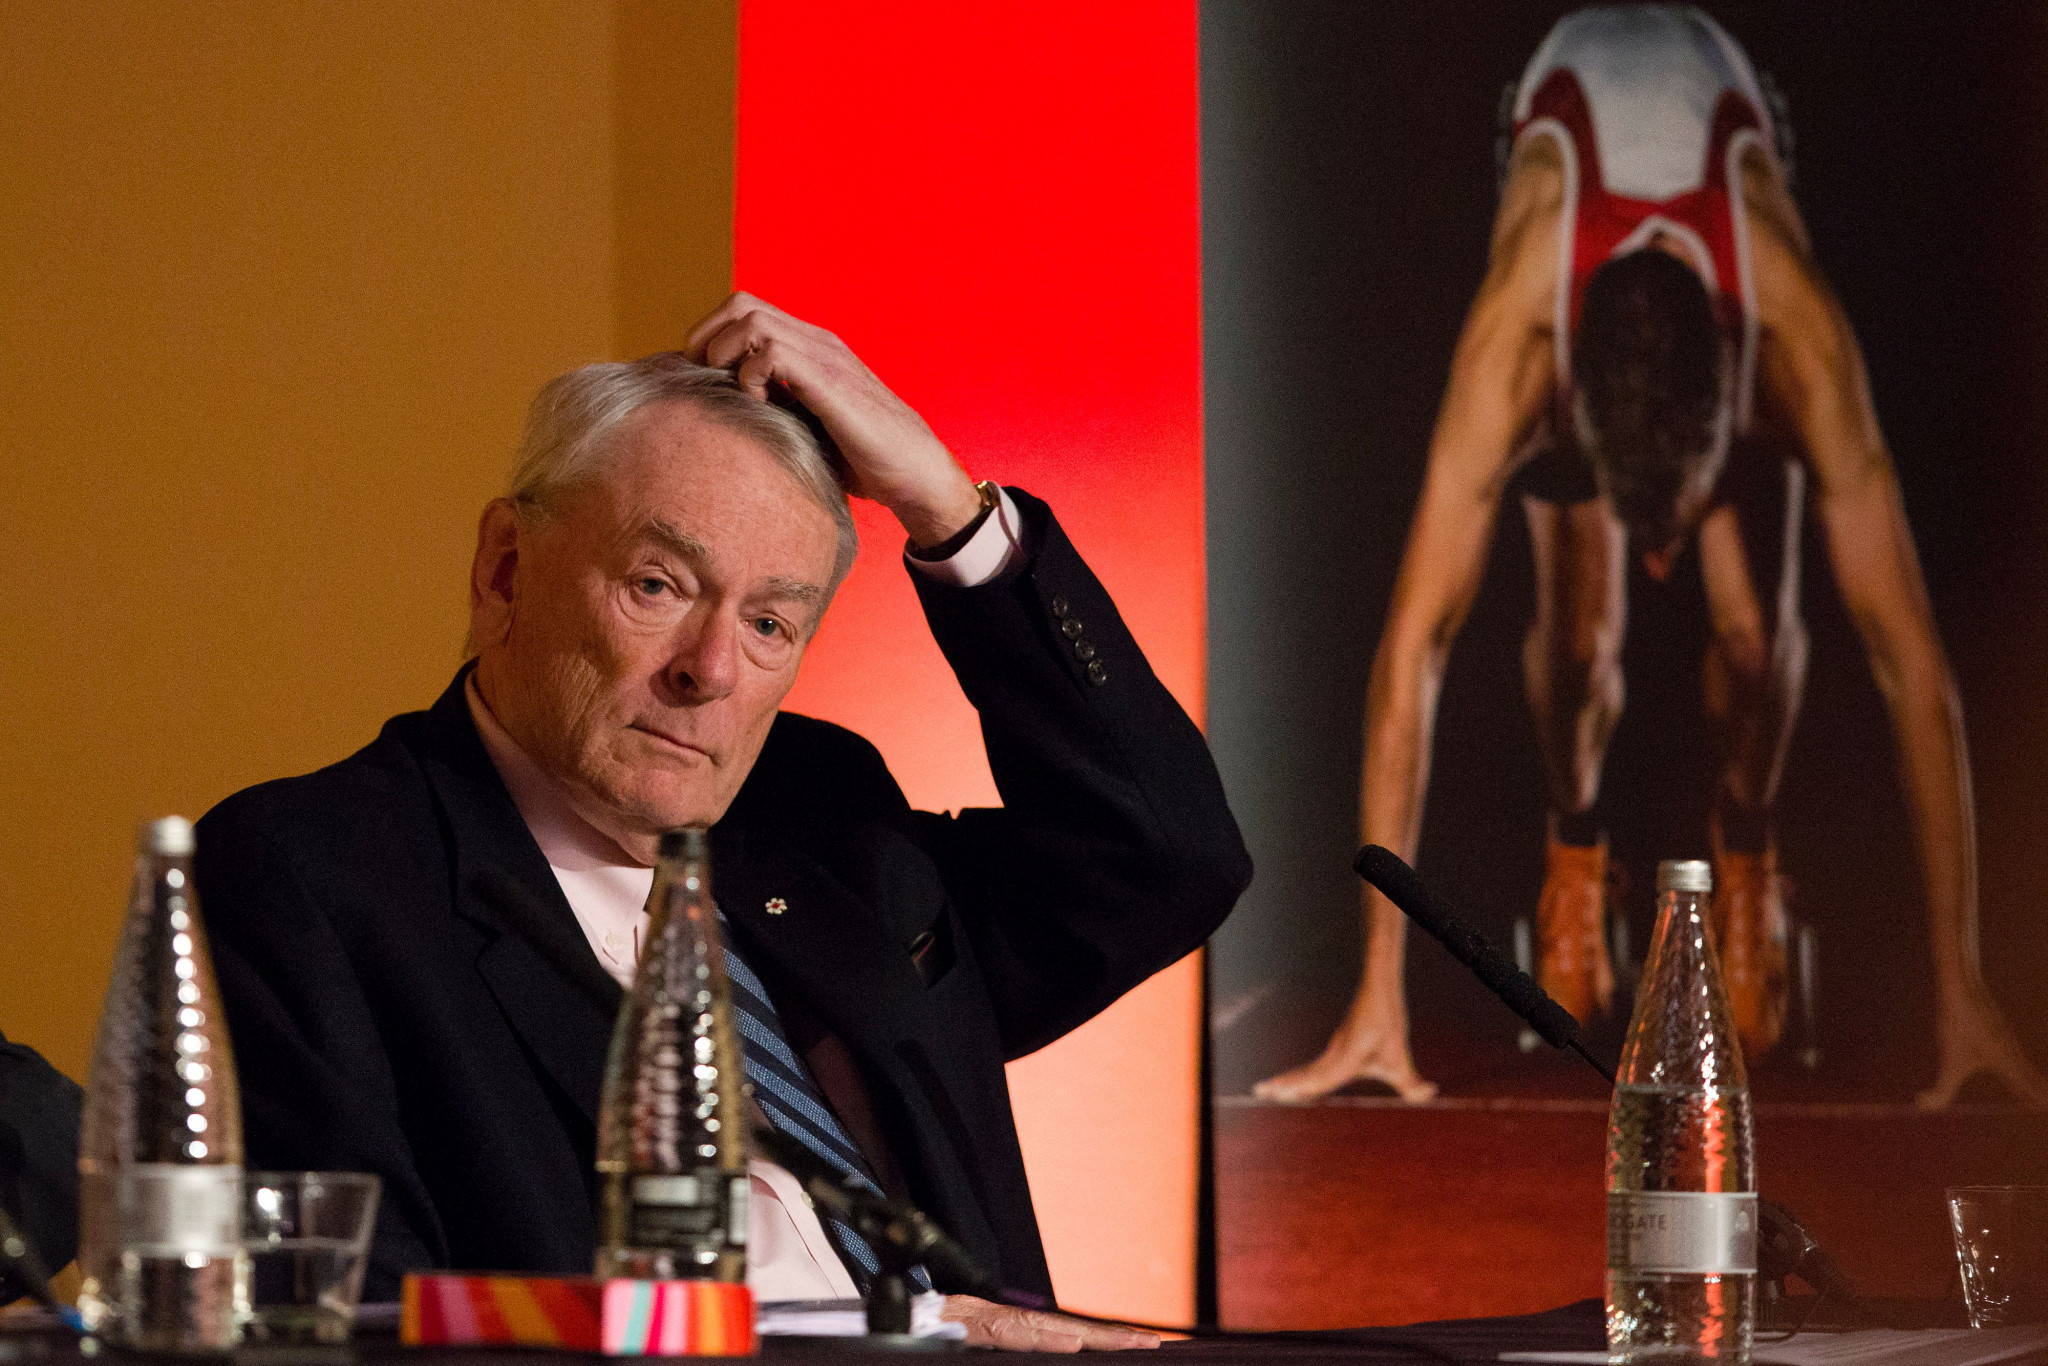 Richard Pound has criticised the IOC stance on Russian doping ©Getty Images